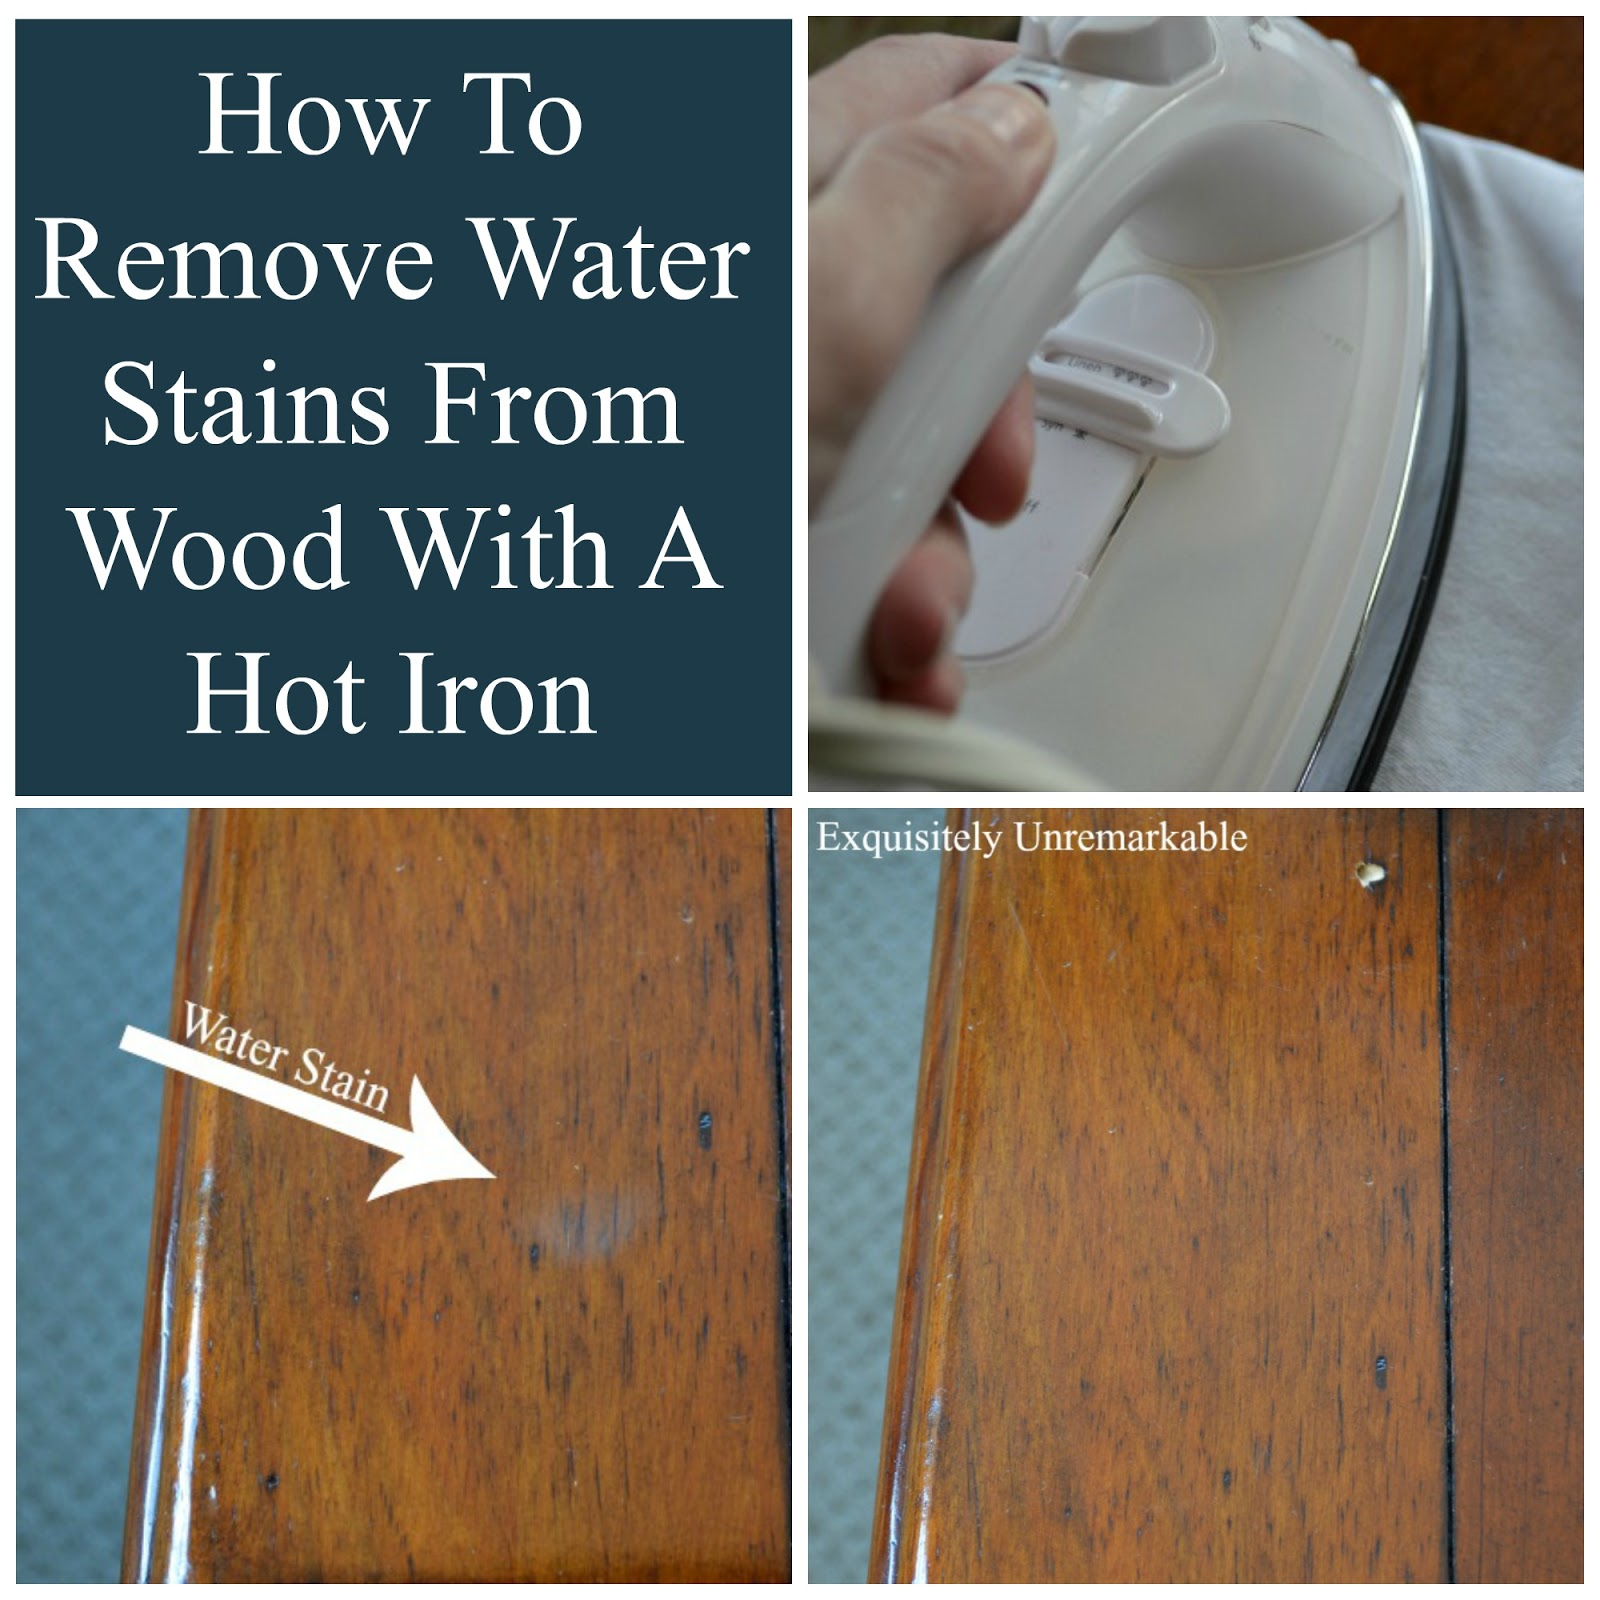 How To Remove Water Stains From Wood Exquisitely Unremarkable